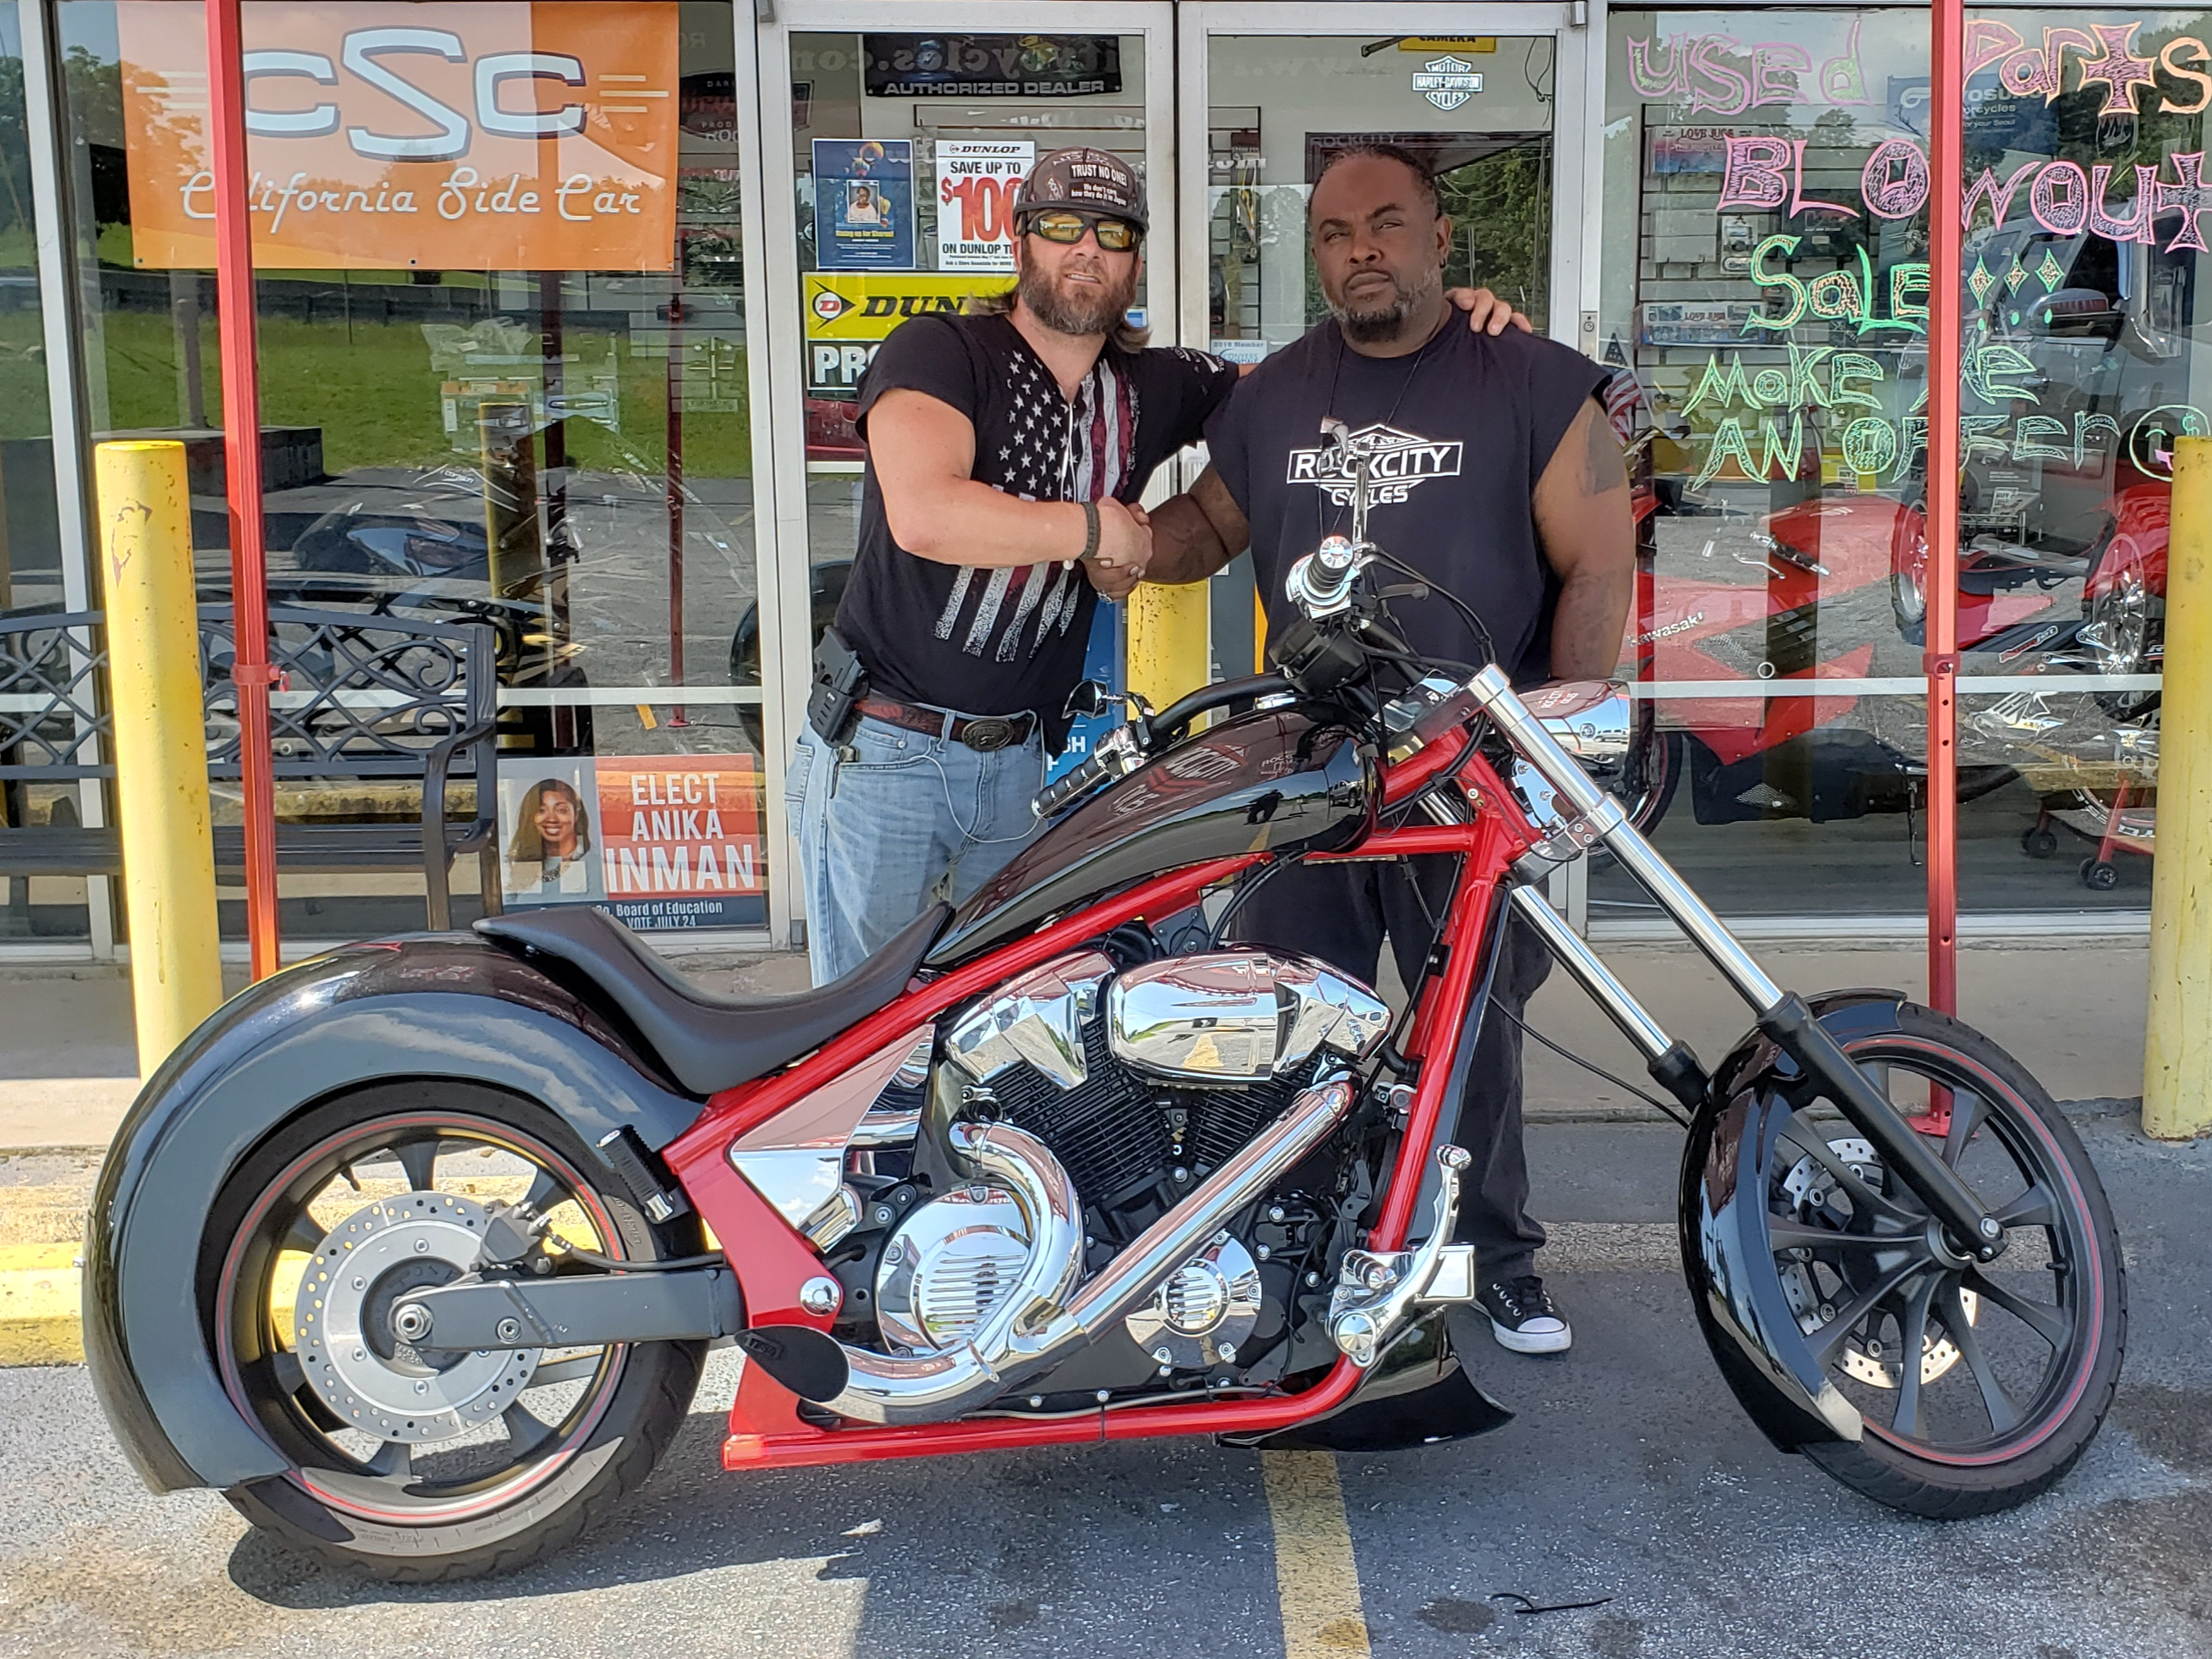 Davon S. with his 2012 Honda Fury